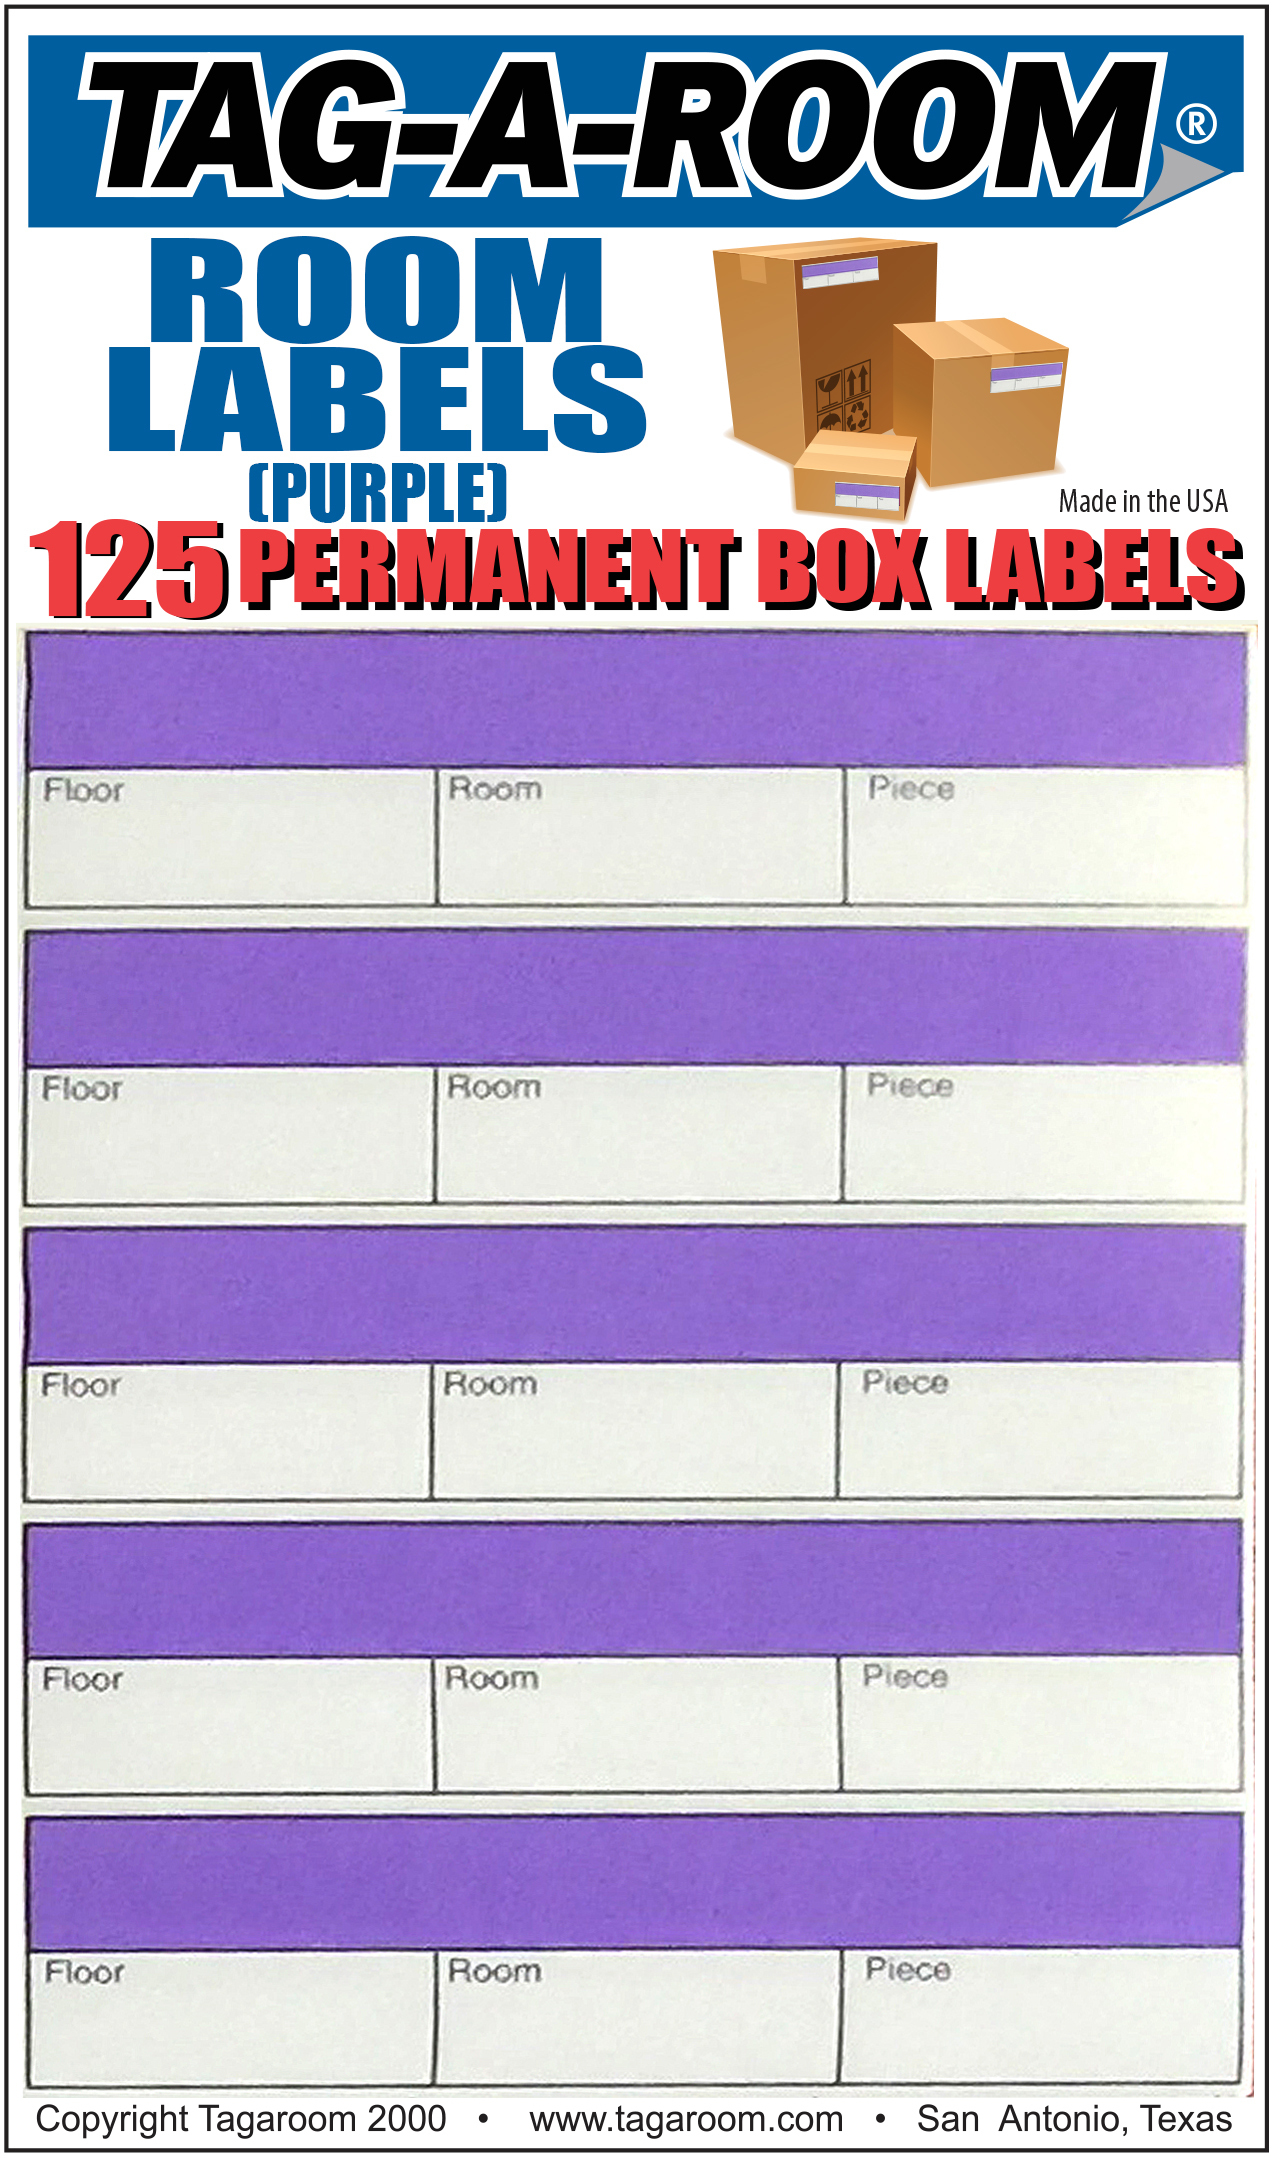 Office - Label - Room - Purple - 125 Count 0112310